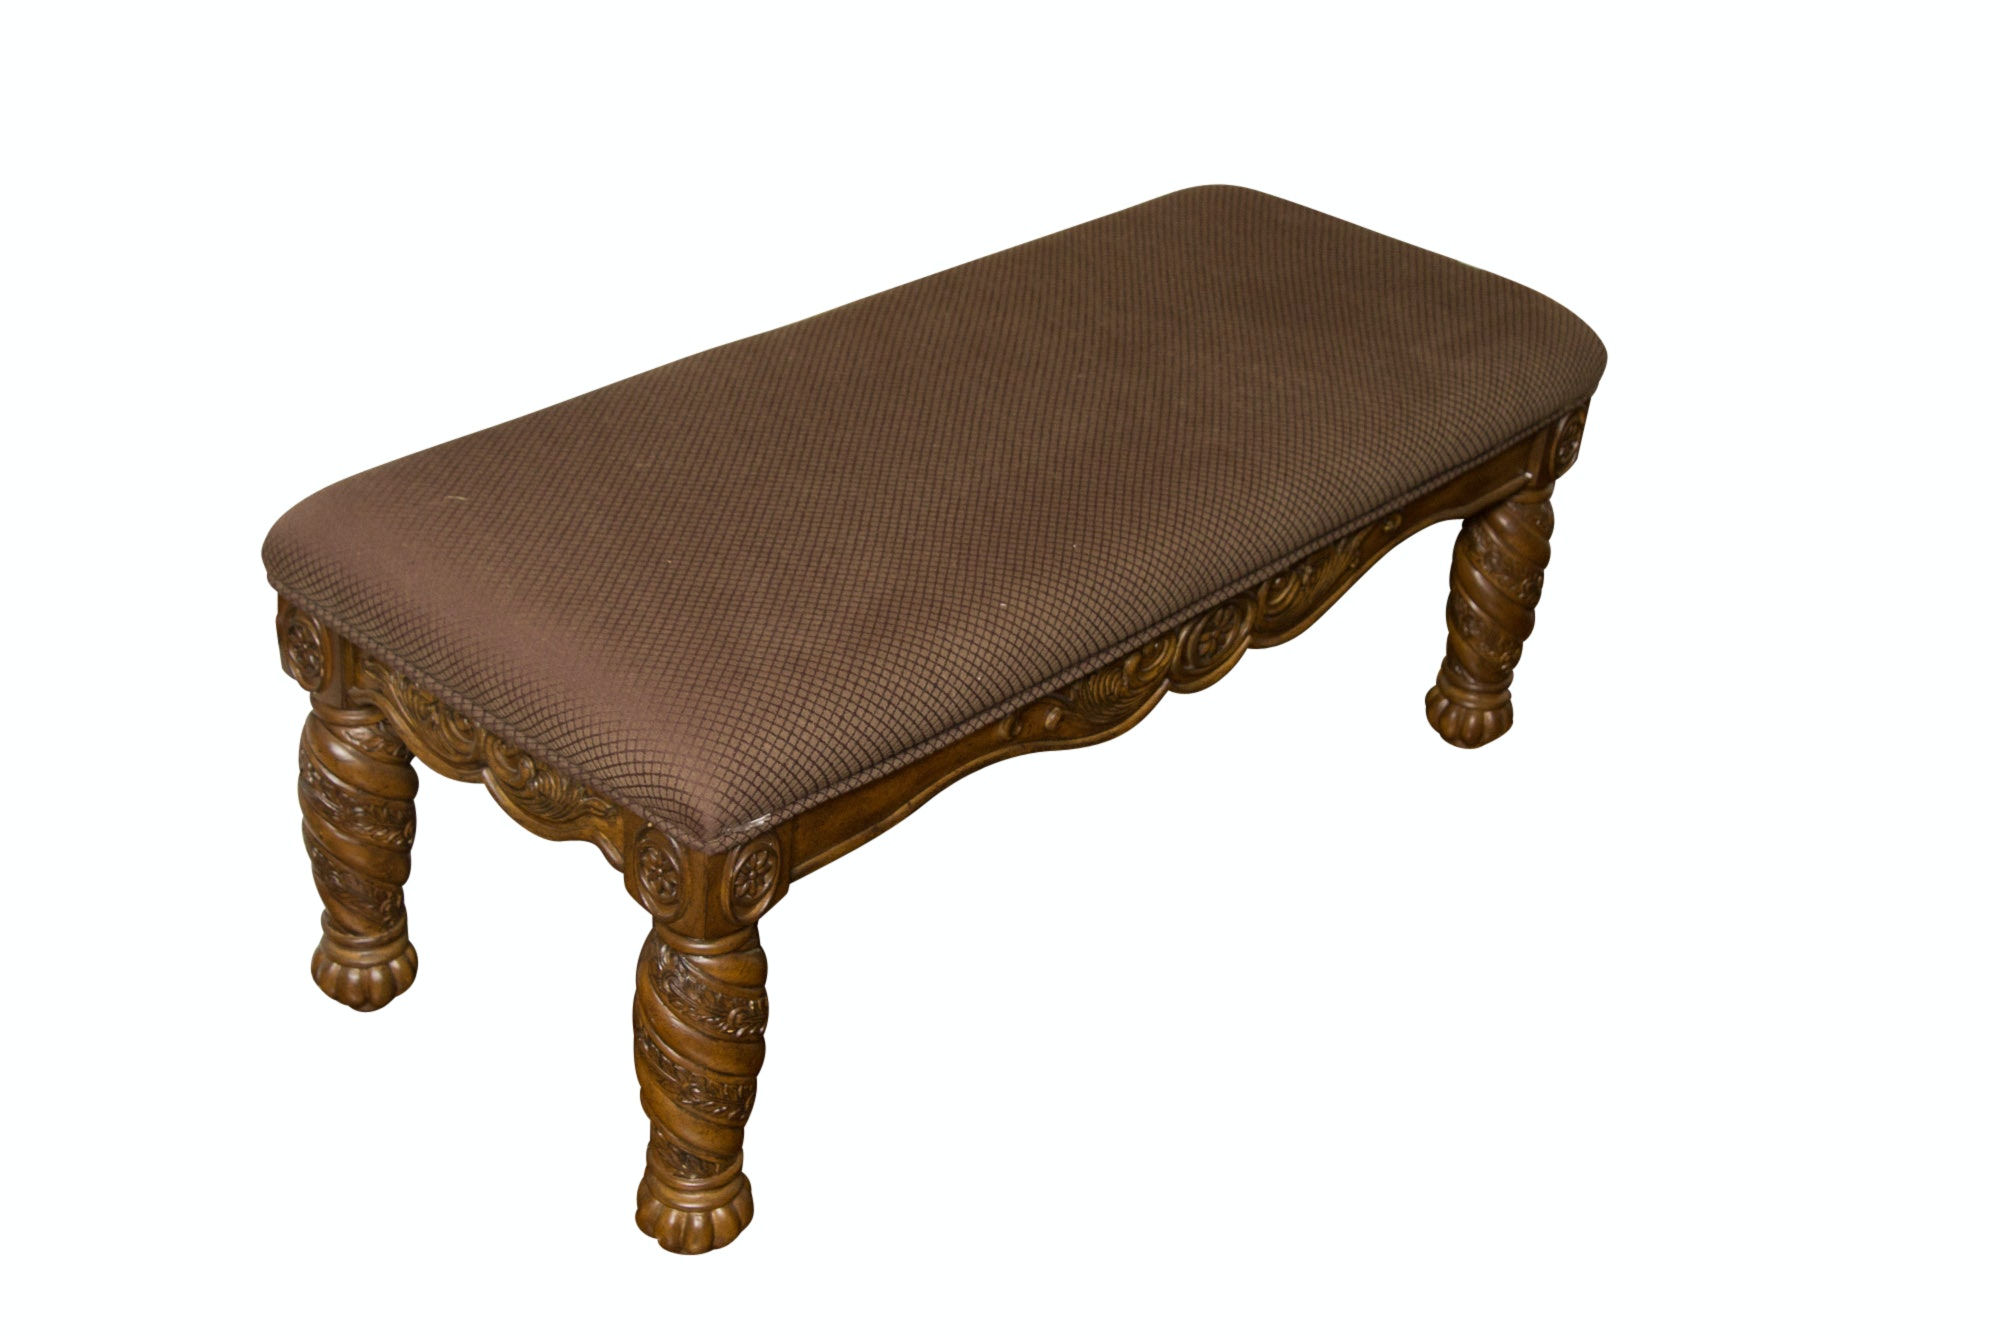 Upholstered Ashley Furniture Bench